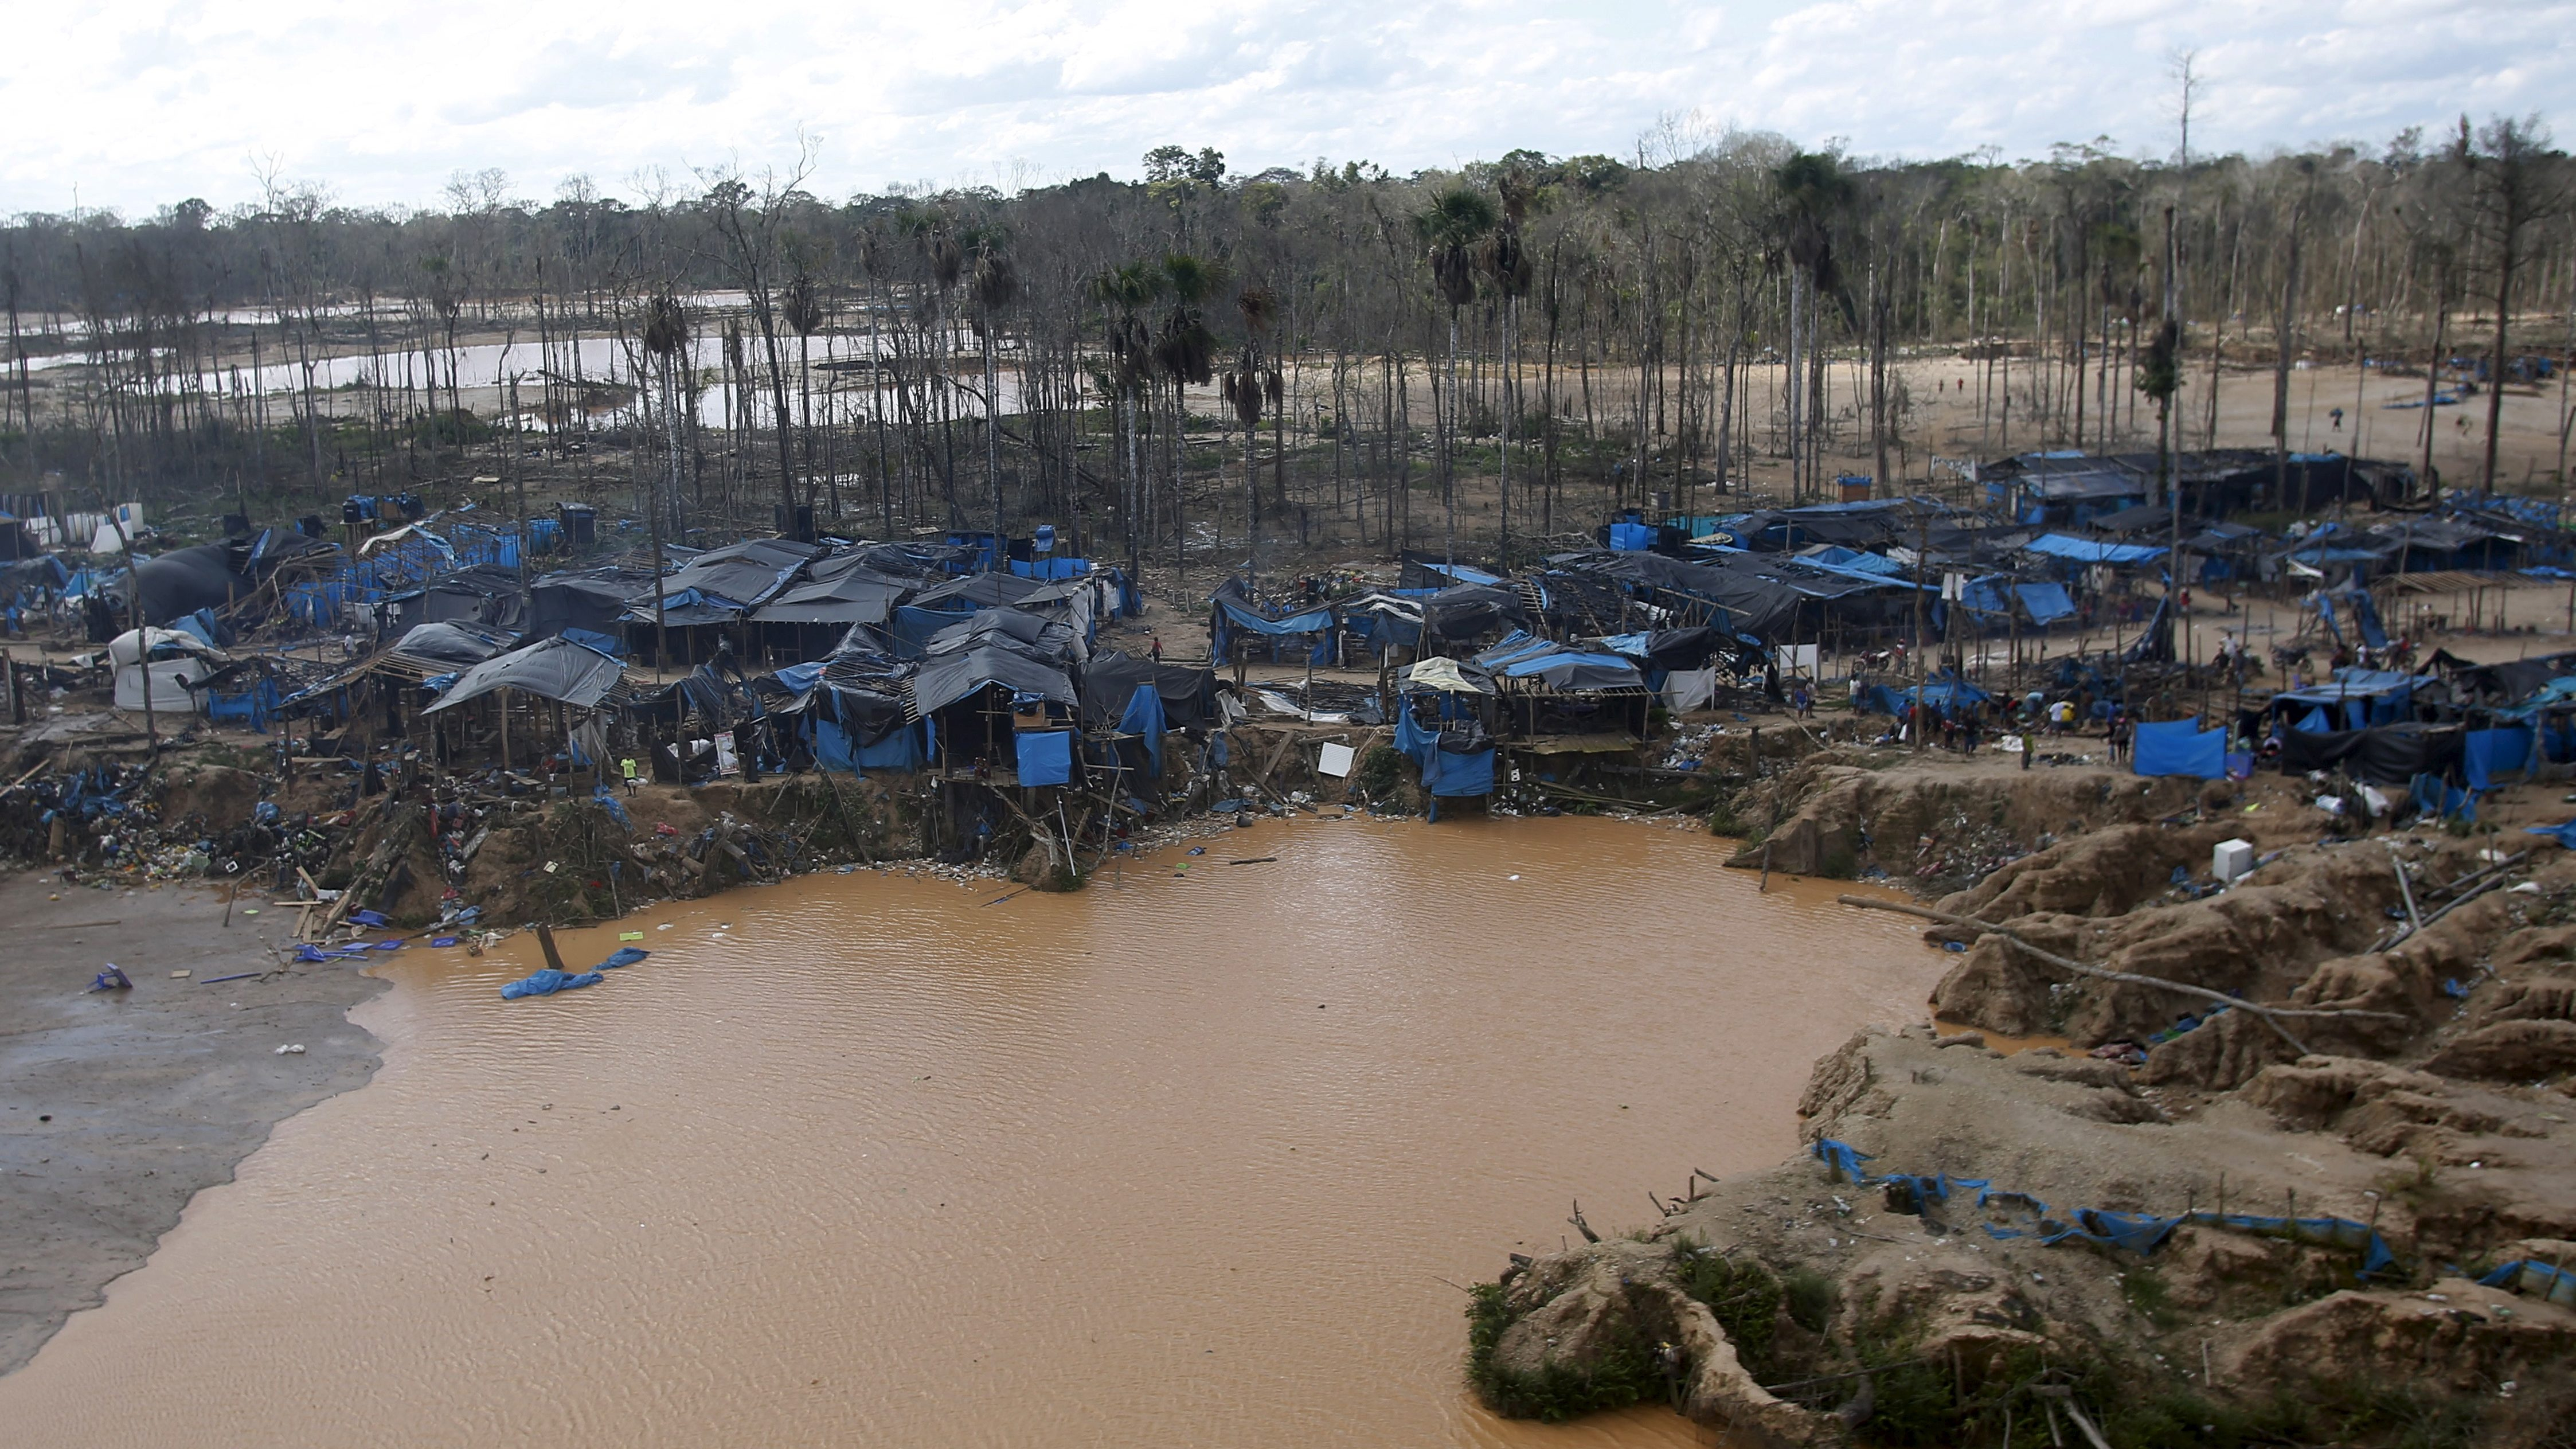 A view of an illegal gold mining camp in a zone known as Mega 14, in the southern Amazon region of Madre de Dios July 14, 2015. Peruvian police razed dozens of illegal gold mining camps at the edge of an Amazonian nature reserve this week, part of a renewed bid to halt the spread of wildcatting in a remote rainforest region. The stings at the edge of the Tambopata National Reserve were the first in the southeastern region of Madre de Dios since a crackdown let up in December. Production from wildcat miners in Madre de Dios, who sell their ore up the supply chain, made up about 10 percent of national production before President Ollanta Humala launched the harshest crackdown yet on illegal gold mining last year.